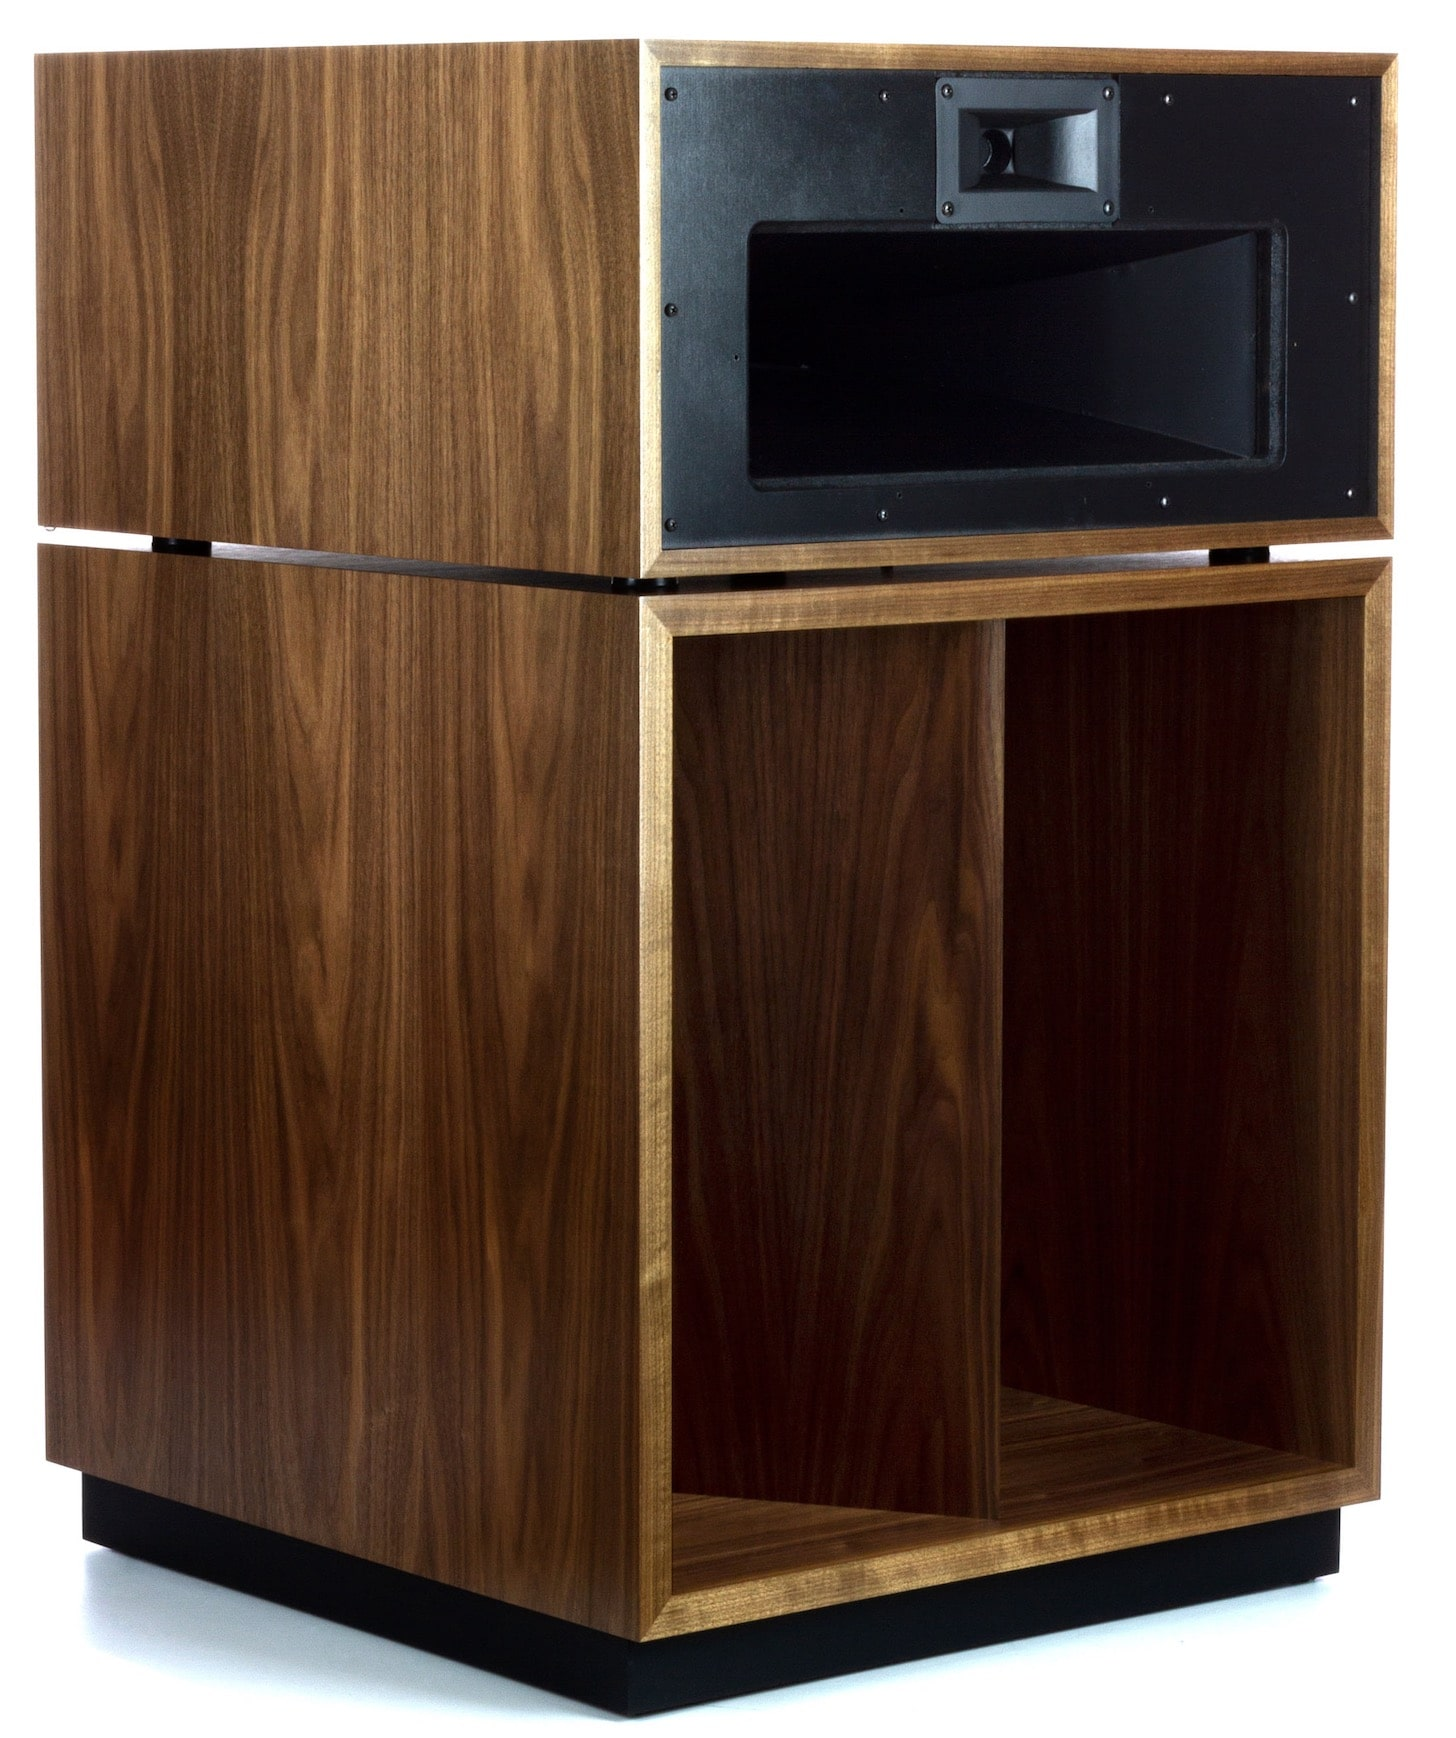 La Scala AL5 From Klipsch